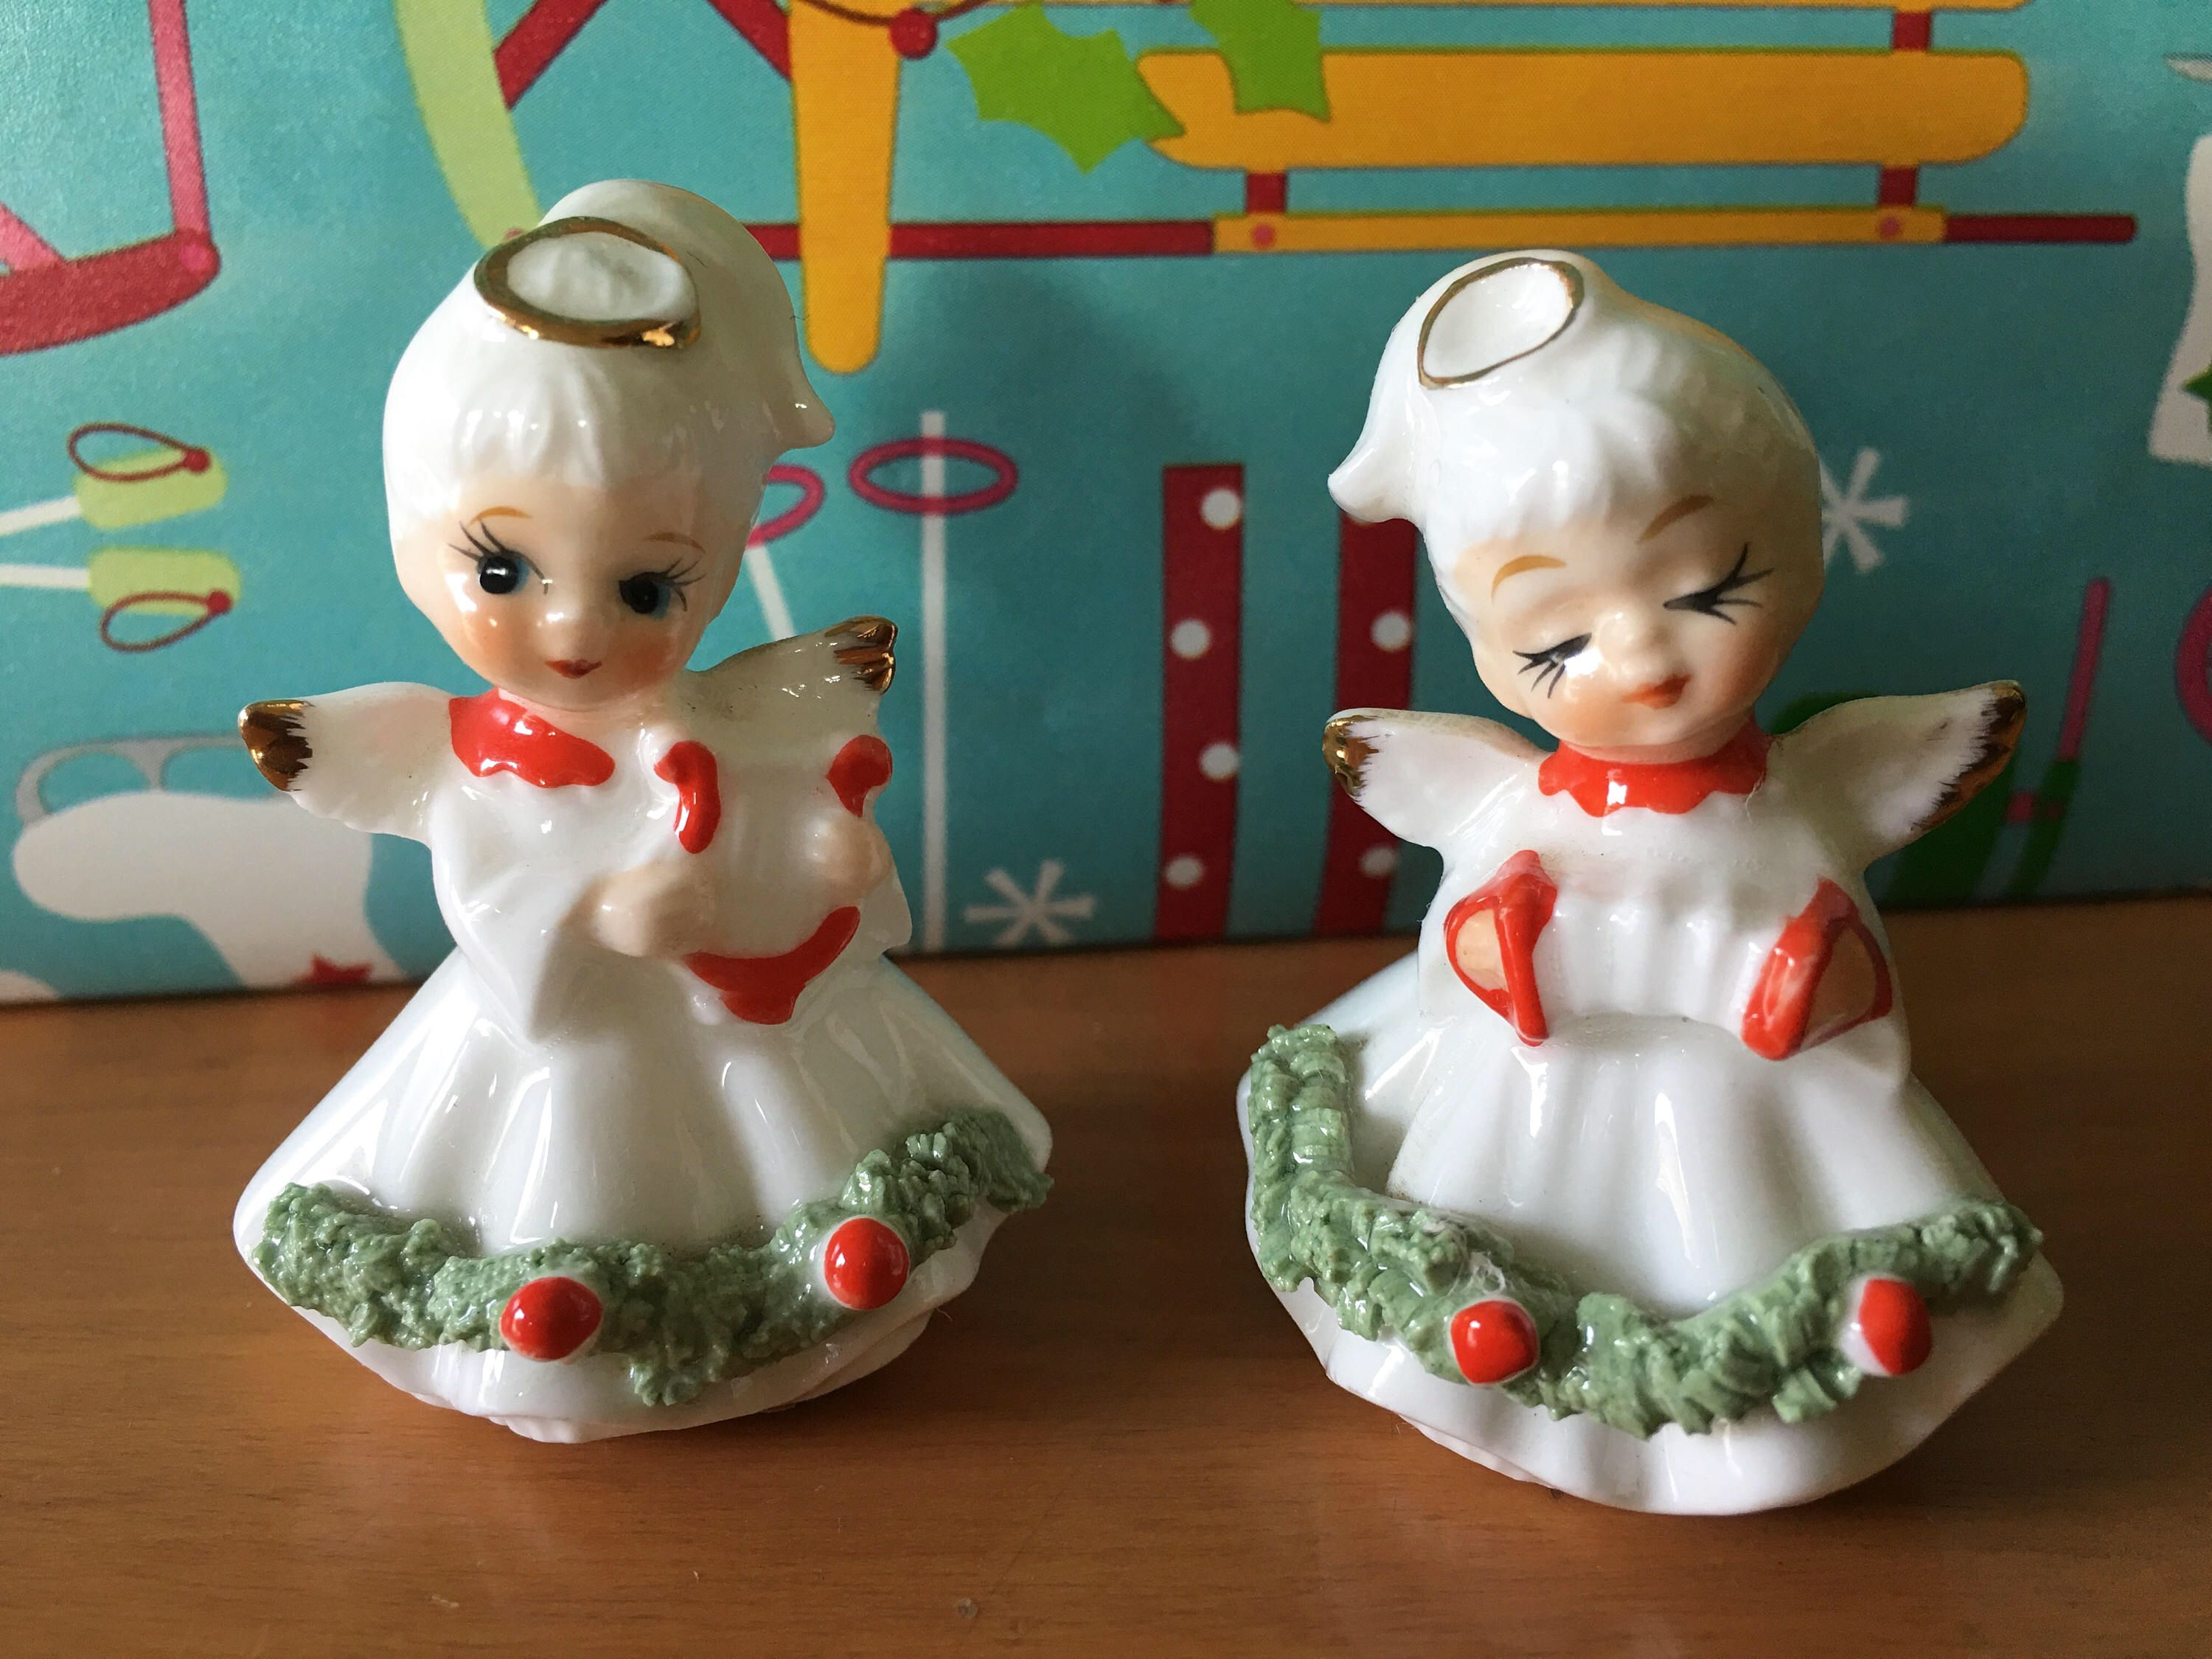 napco miniature christmas angel figurines set of 2 by charmingclassics on etsy https - Miniature Christmas Figurines